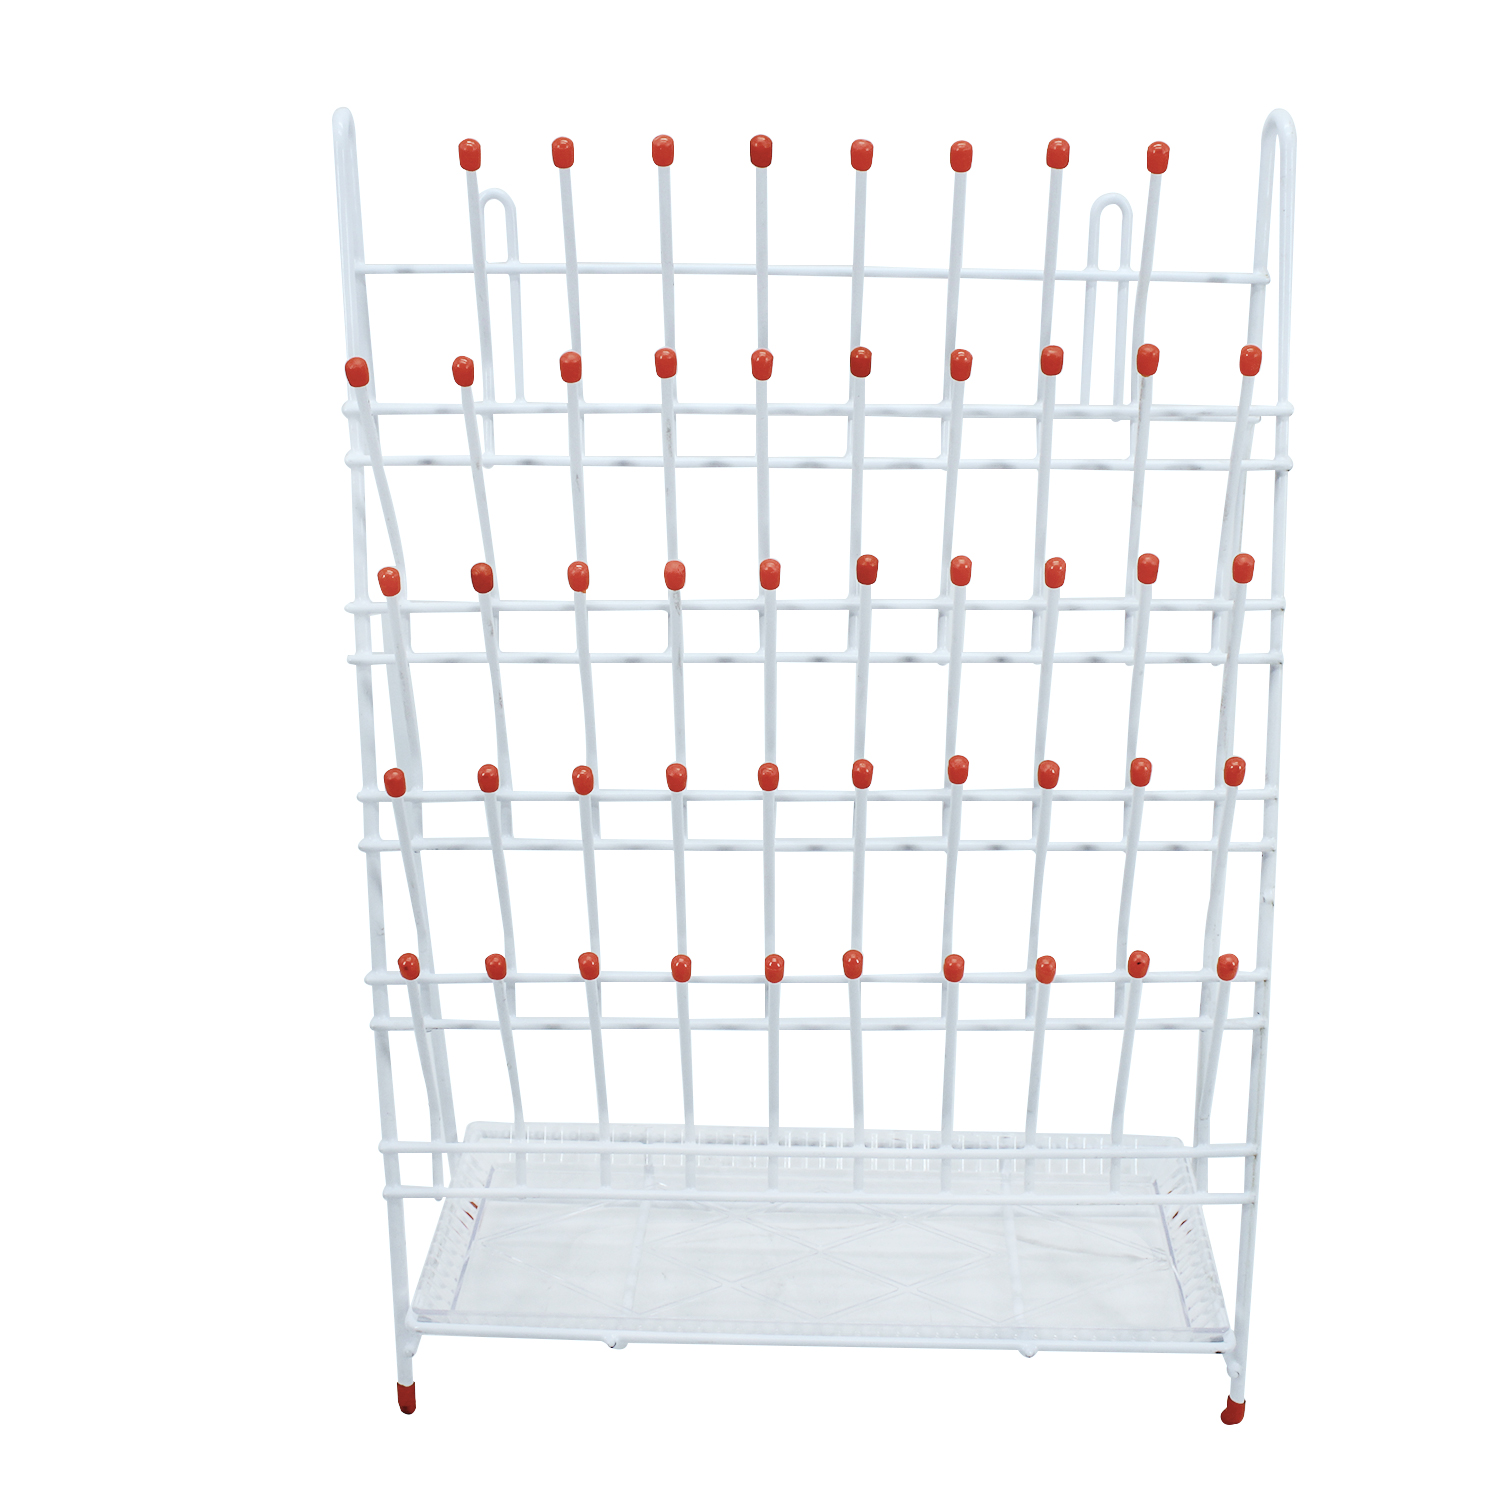 HFS R Gas Can Holder